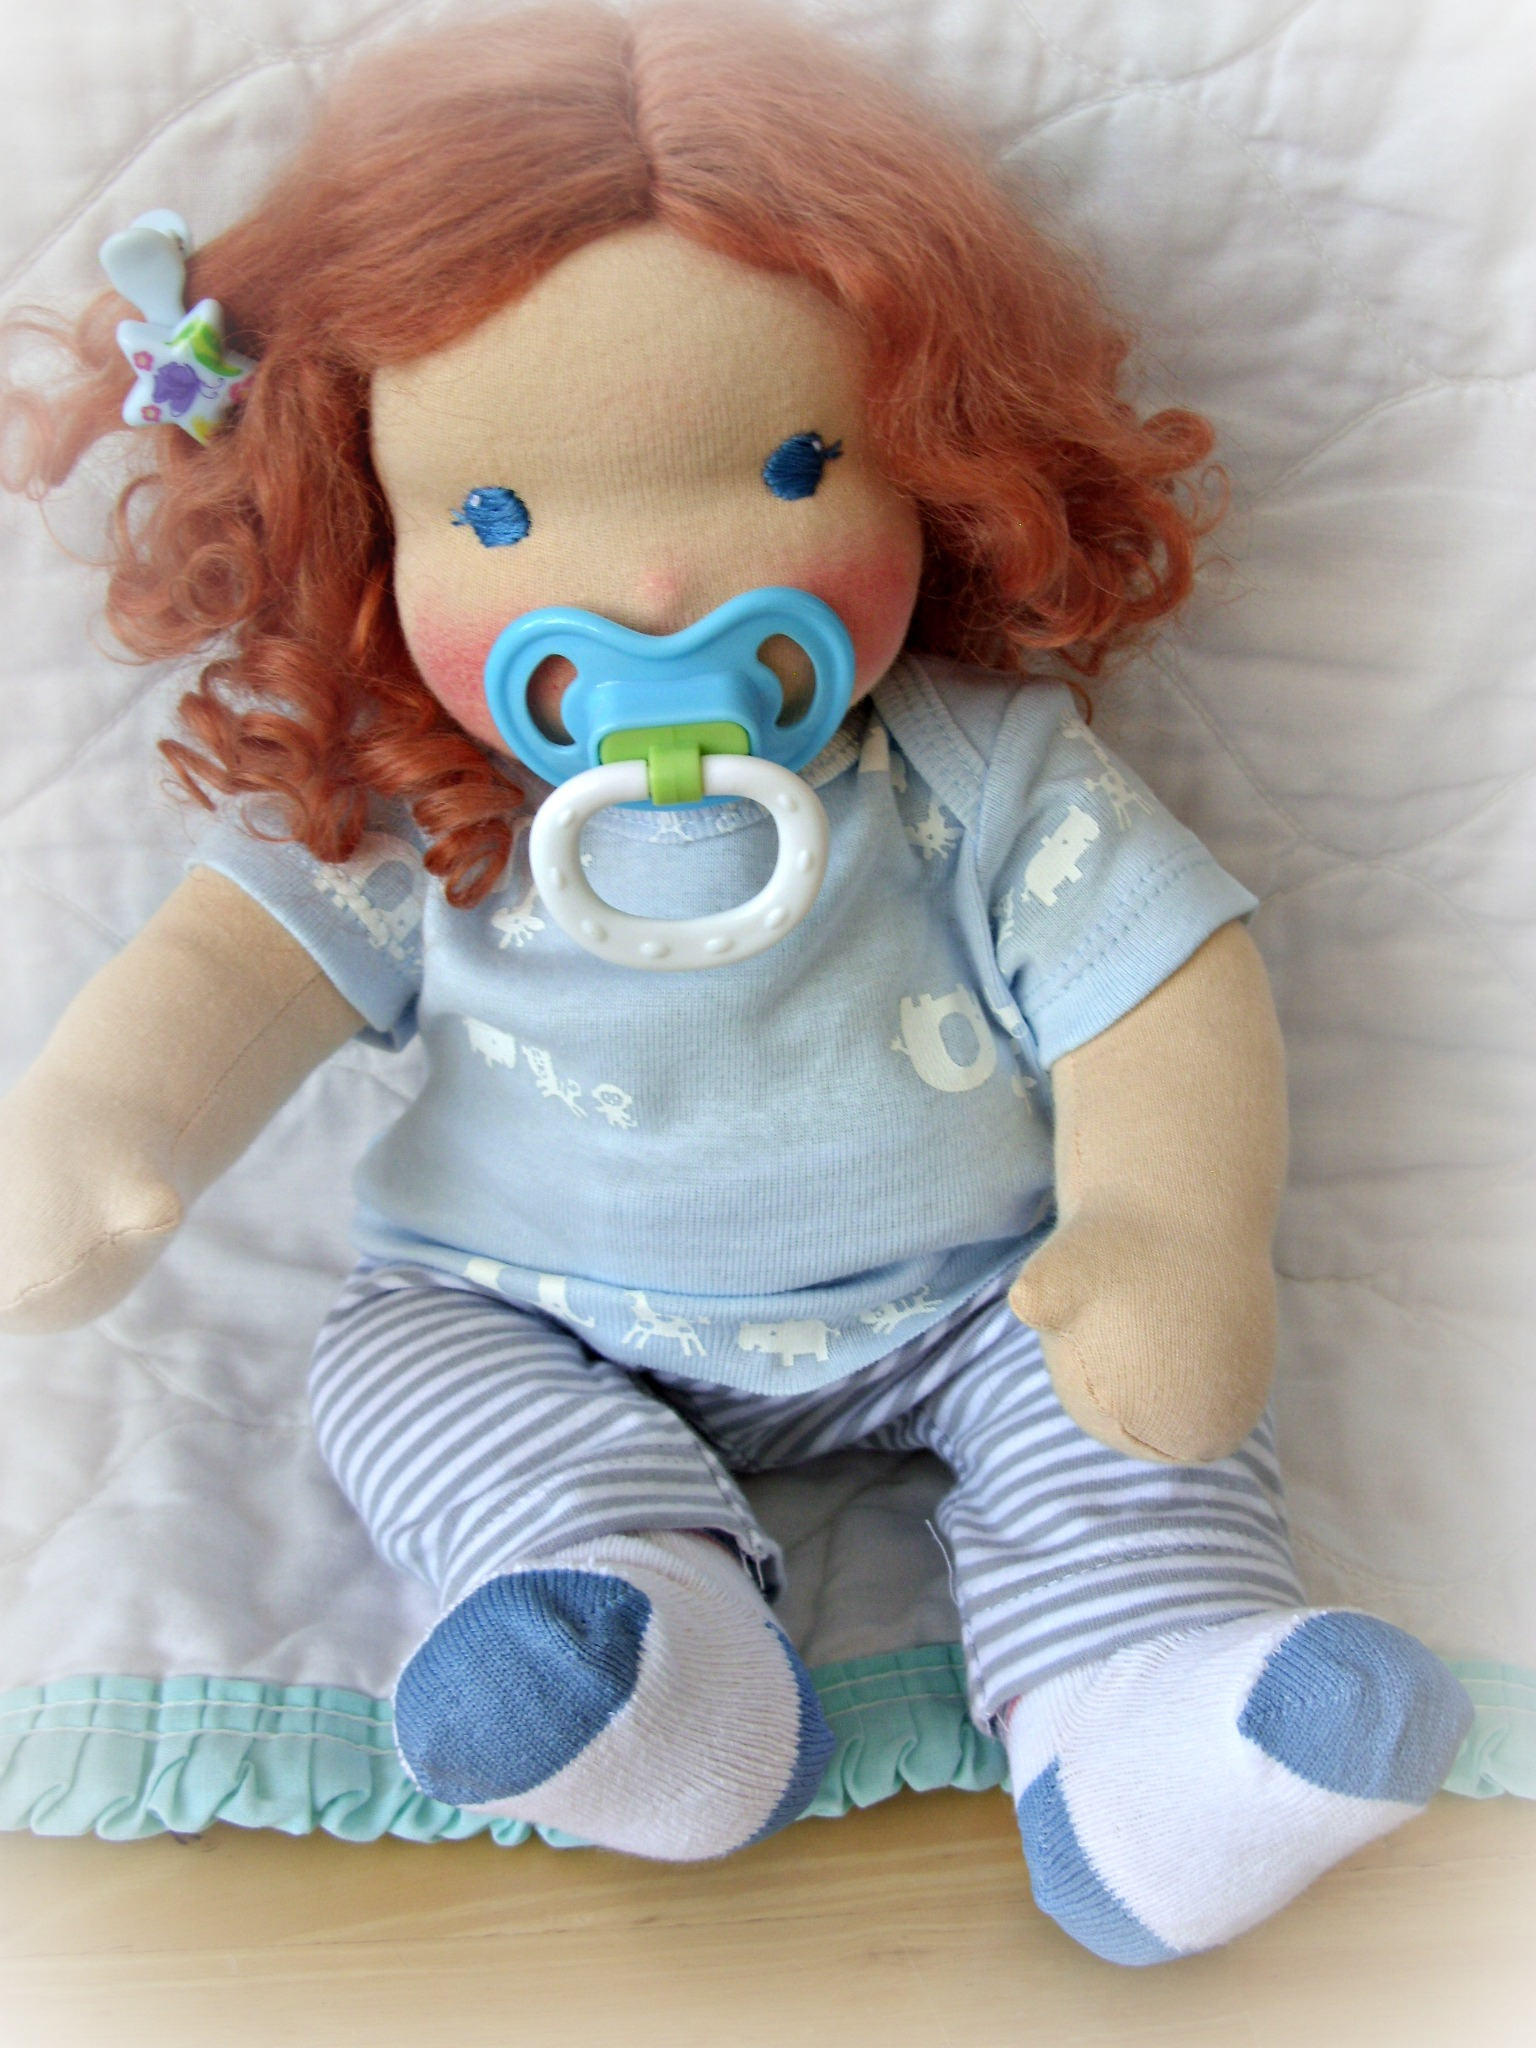 Lali Doll magnetic pacifier instructions.